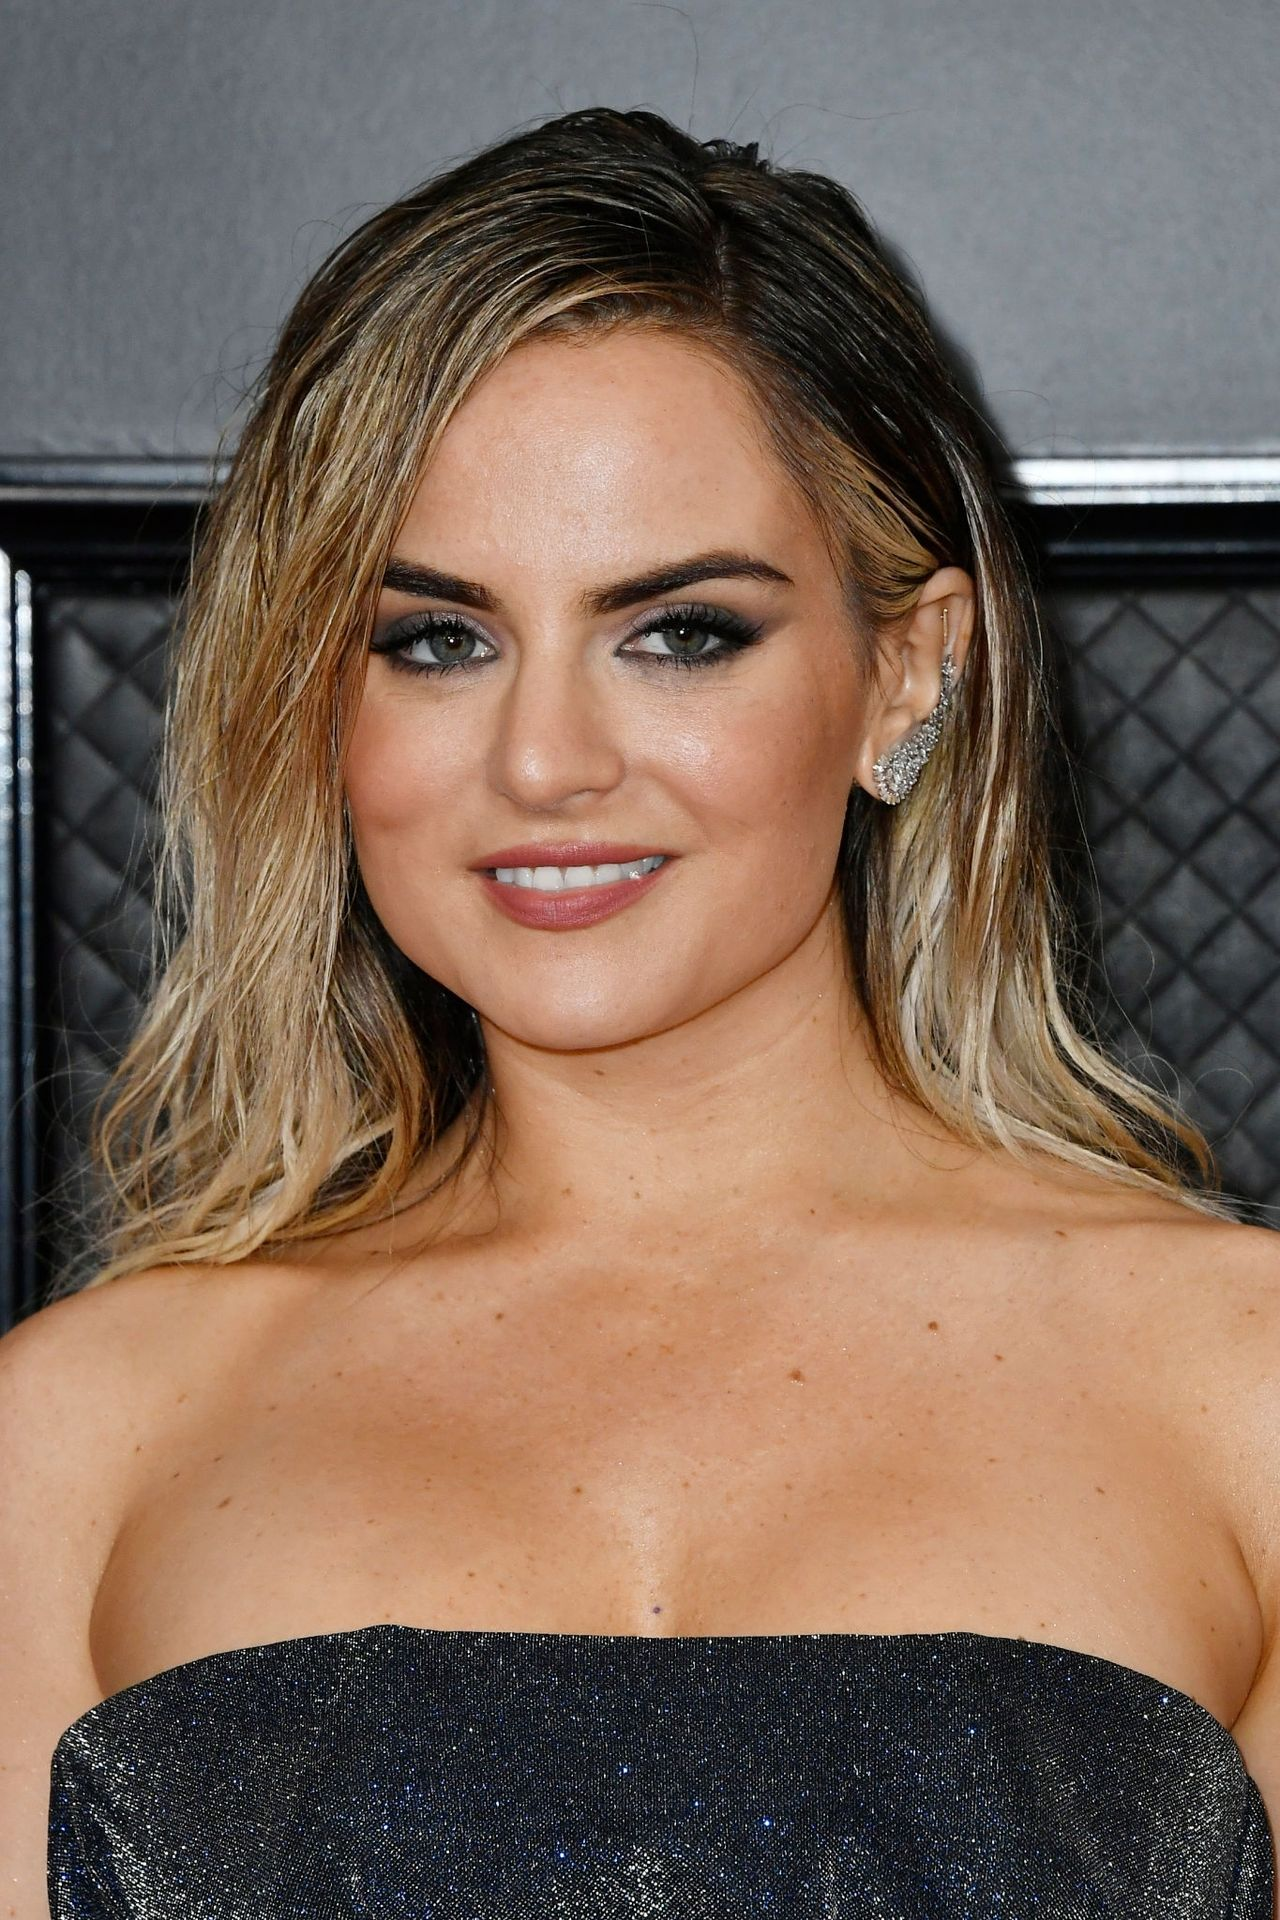 Jojo Shows Her Legs And Cleavage At The 62nd Annual Grammy Awards 0006